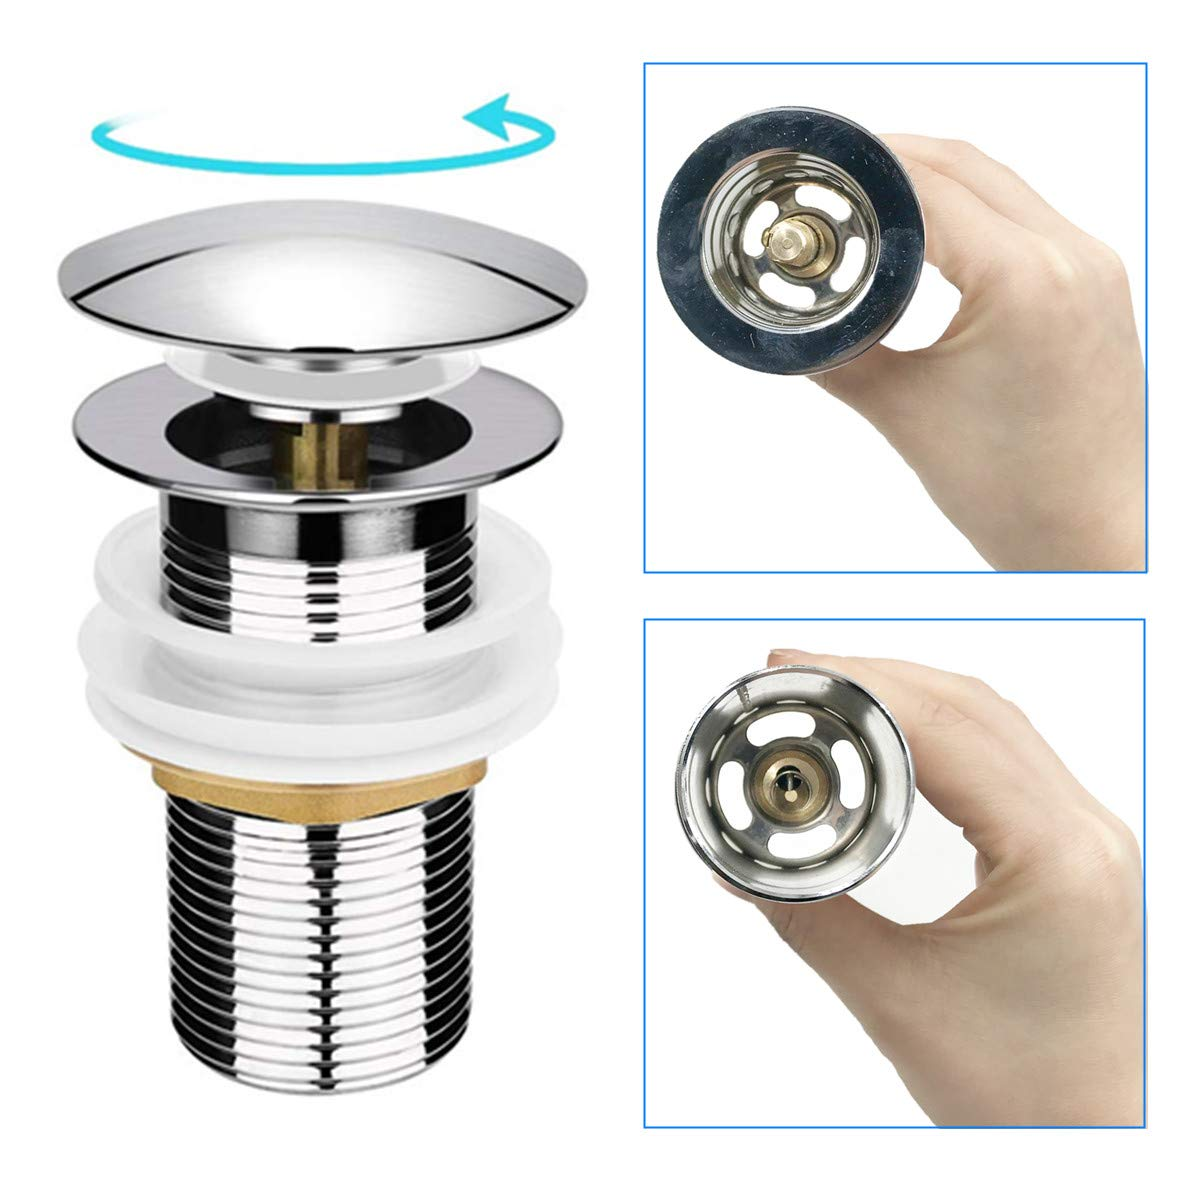 Basin Sink Waste Stainless Steel Unslotted Basin Sink Tap Push Pop Up Click Clack Sprung Plug